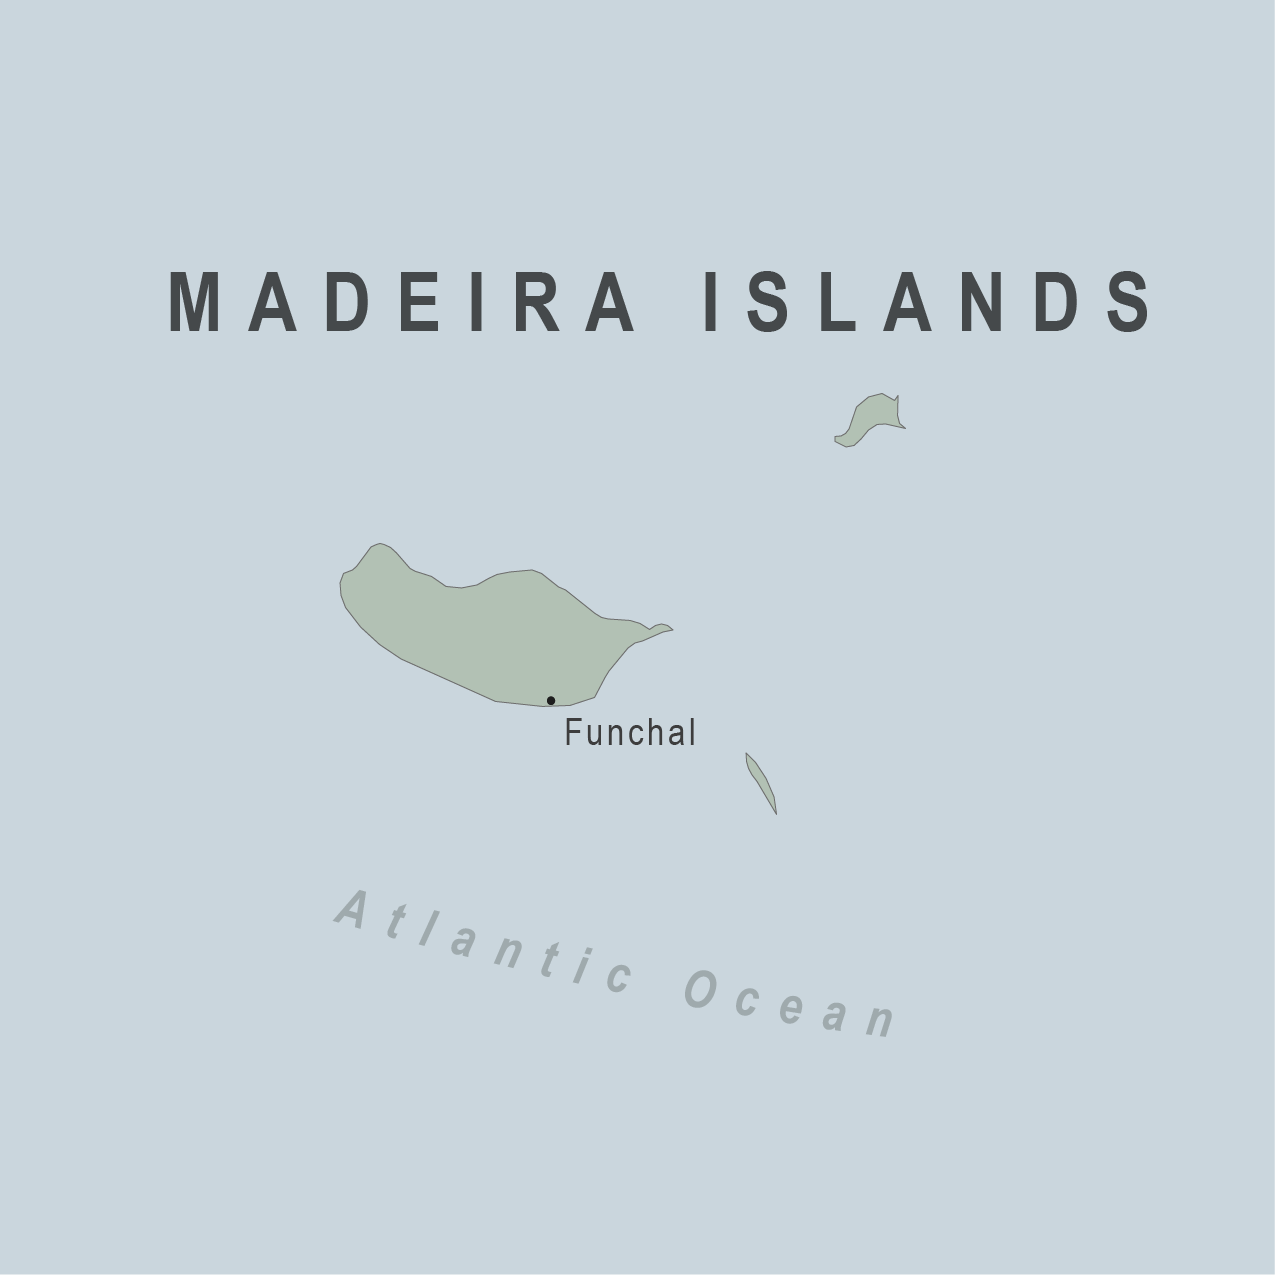 Map - Madeira Islands (Portugal)